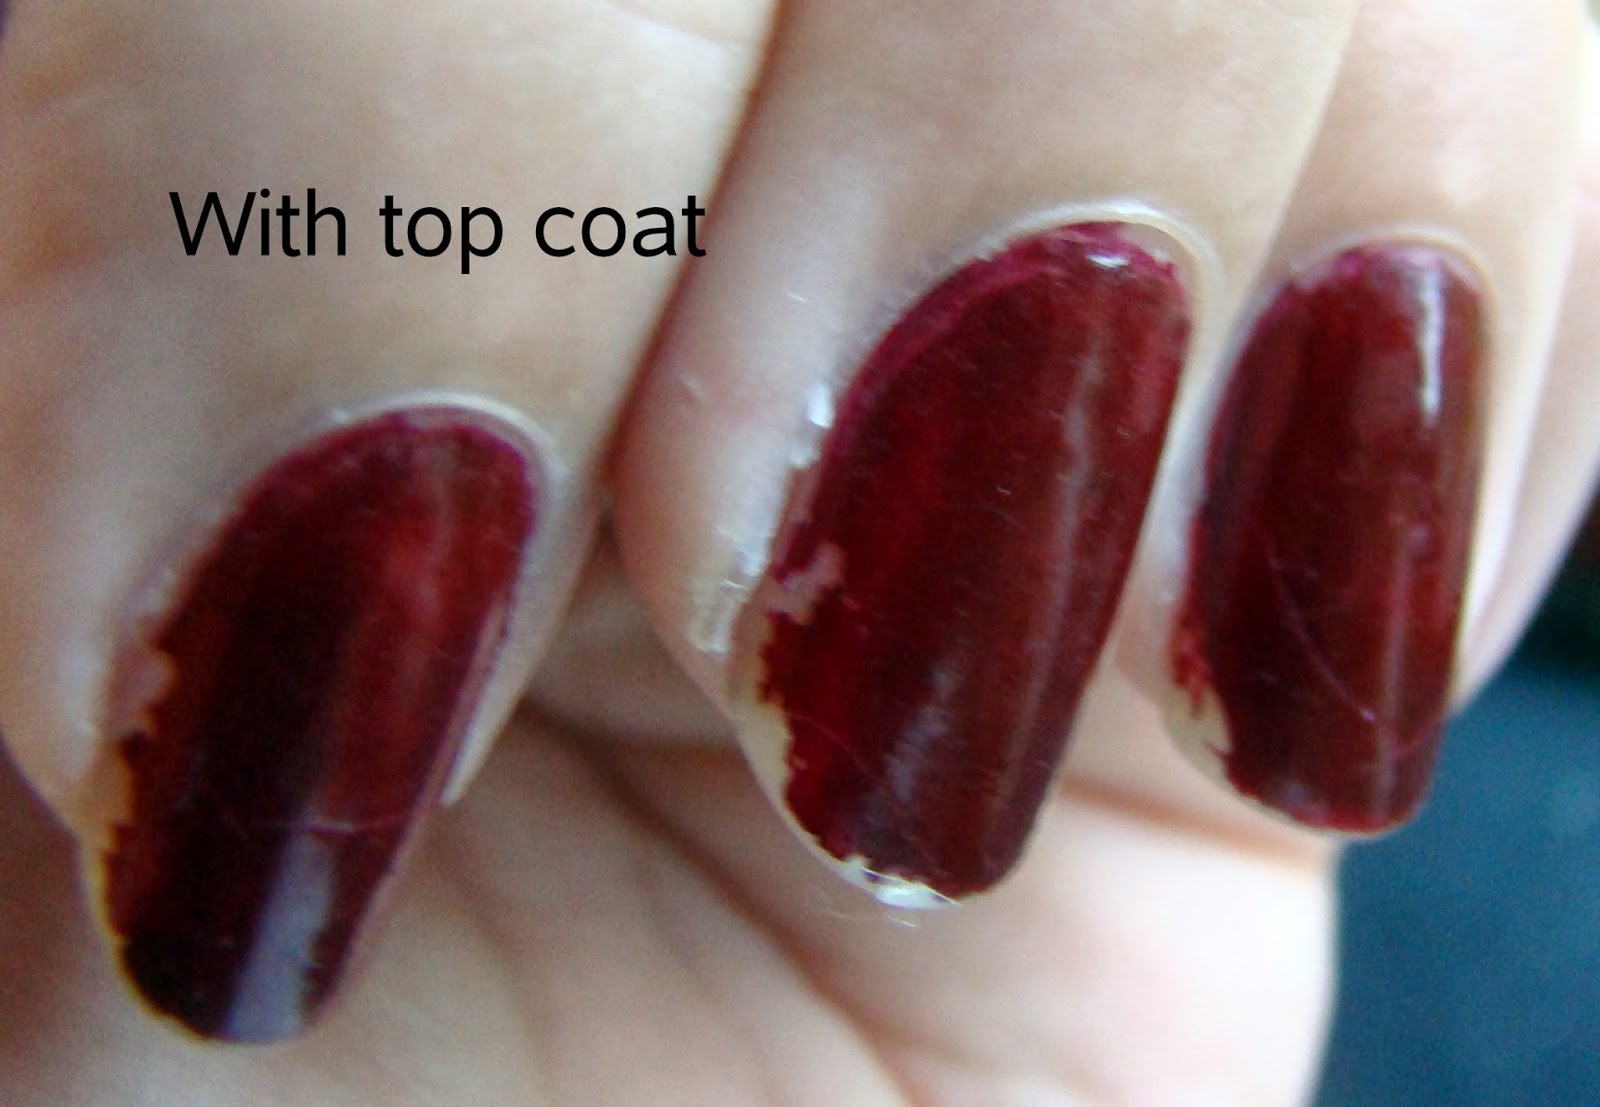 The last person you expected: Sally Hansen No Chip Acrylic Top Coat